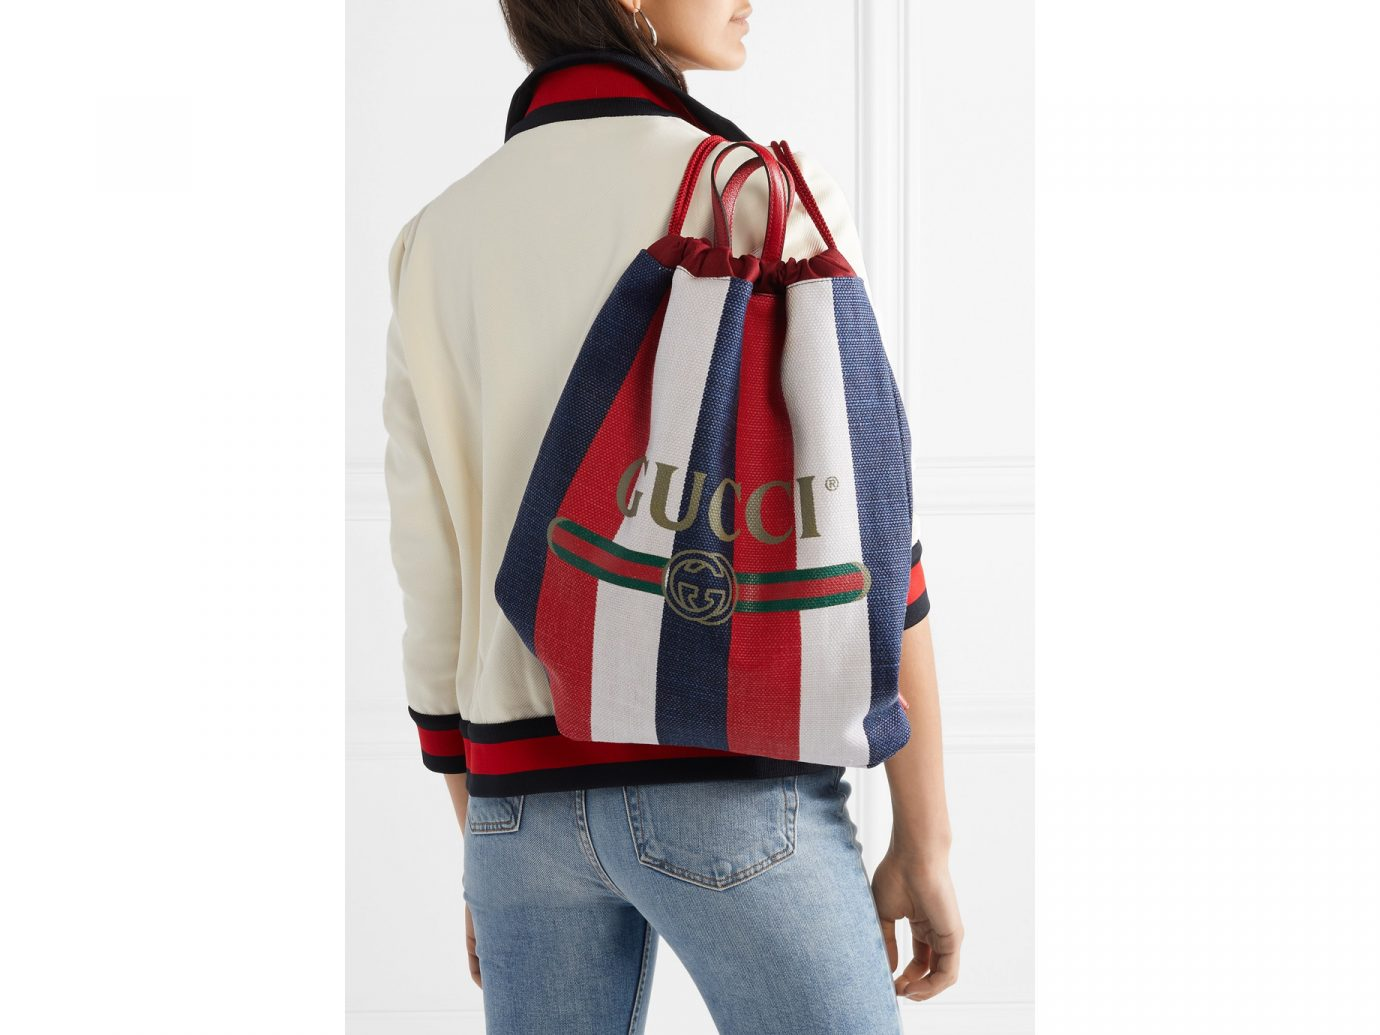 Gucci Leather-trimmed printed canvas backpack